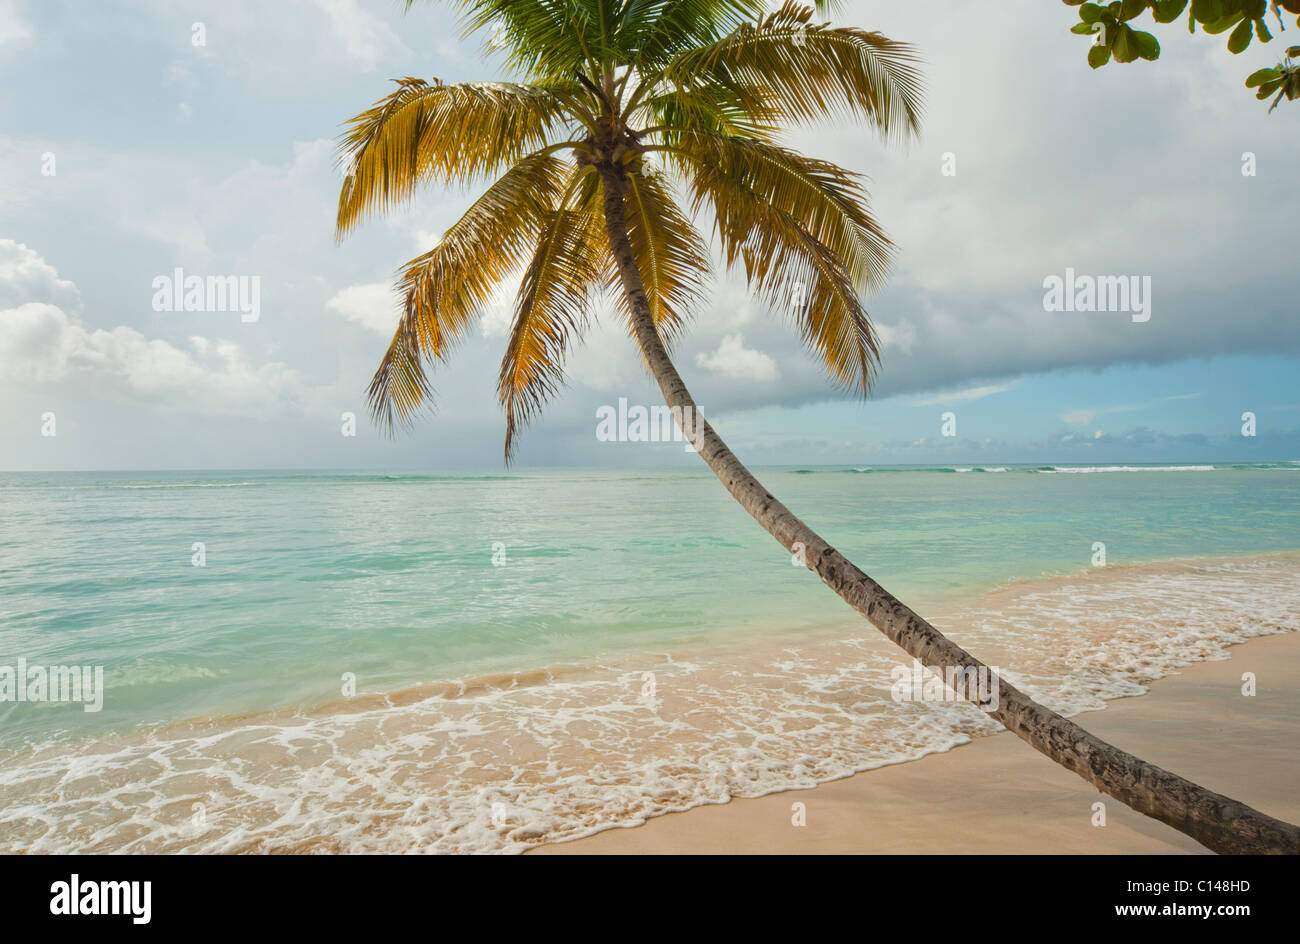 Coconut tree on tropical beach, Pigeon Point, Tobago, Caribbean Stock Photo